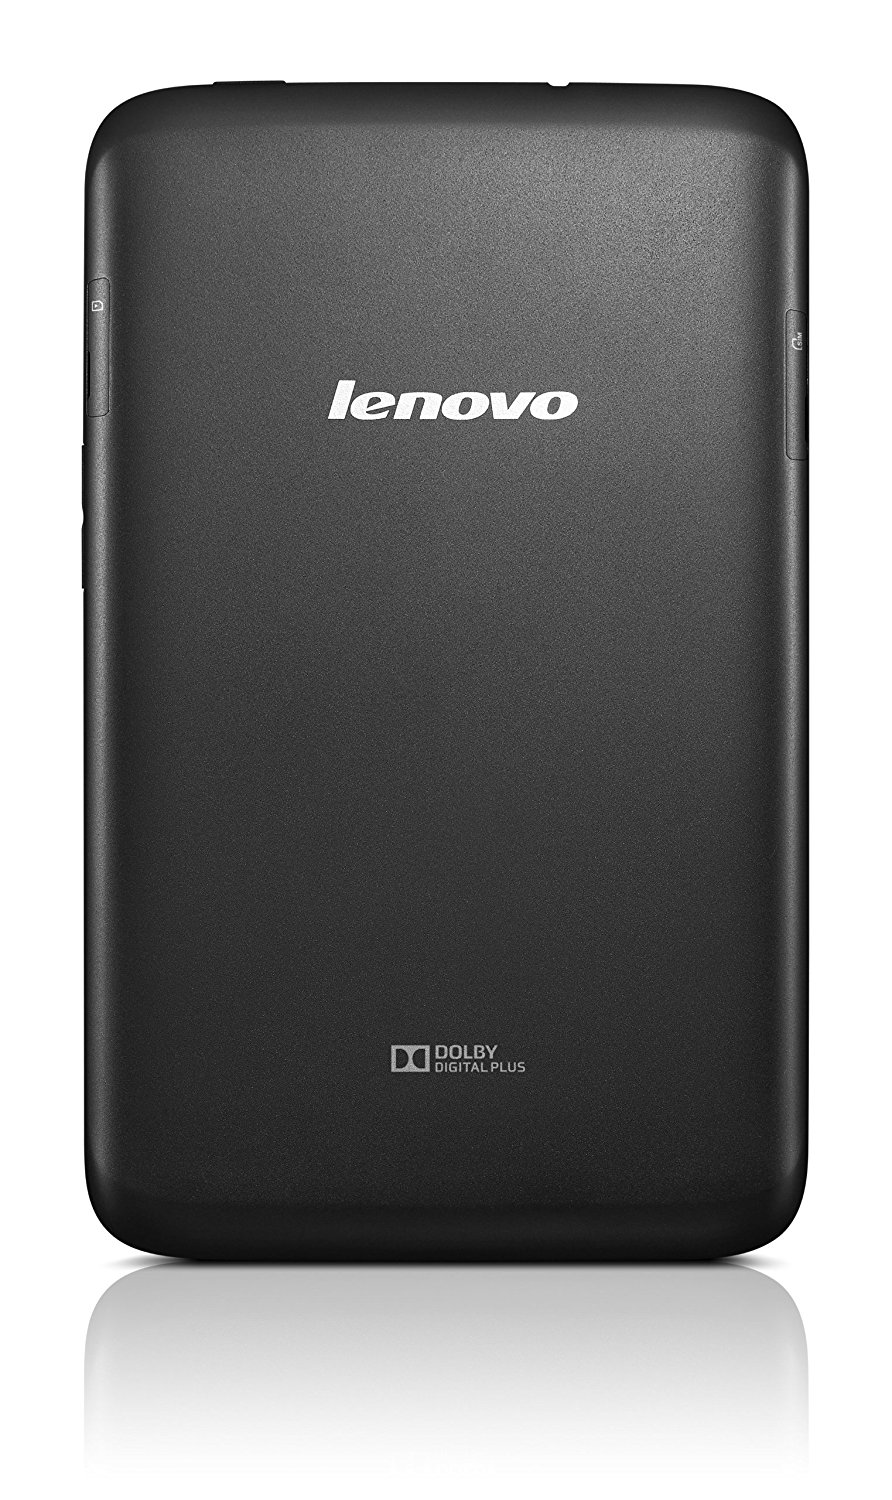 Lenovo 7-Inch Ideatab 8GB Tablet with 1 2 GHz (Quad Core) Processor and  Android 4 1, A1000L, Black (Refurbished)